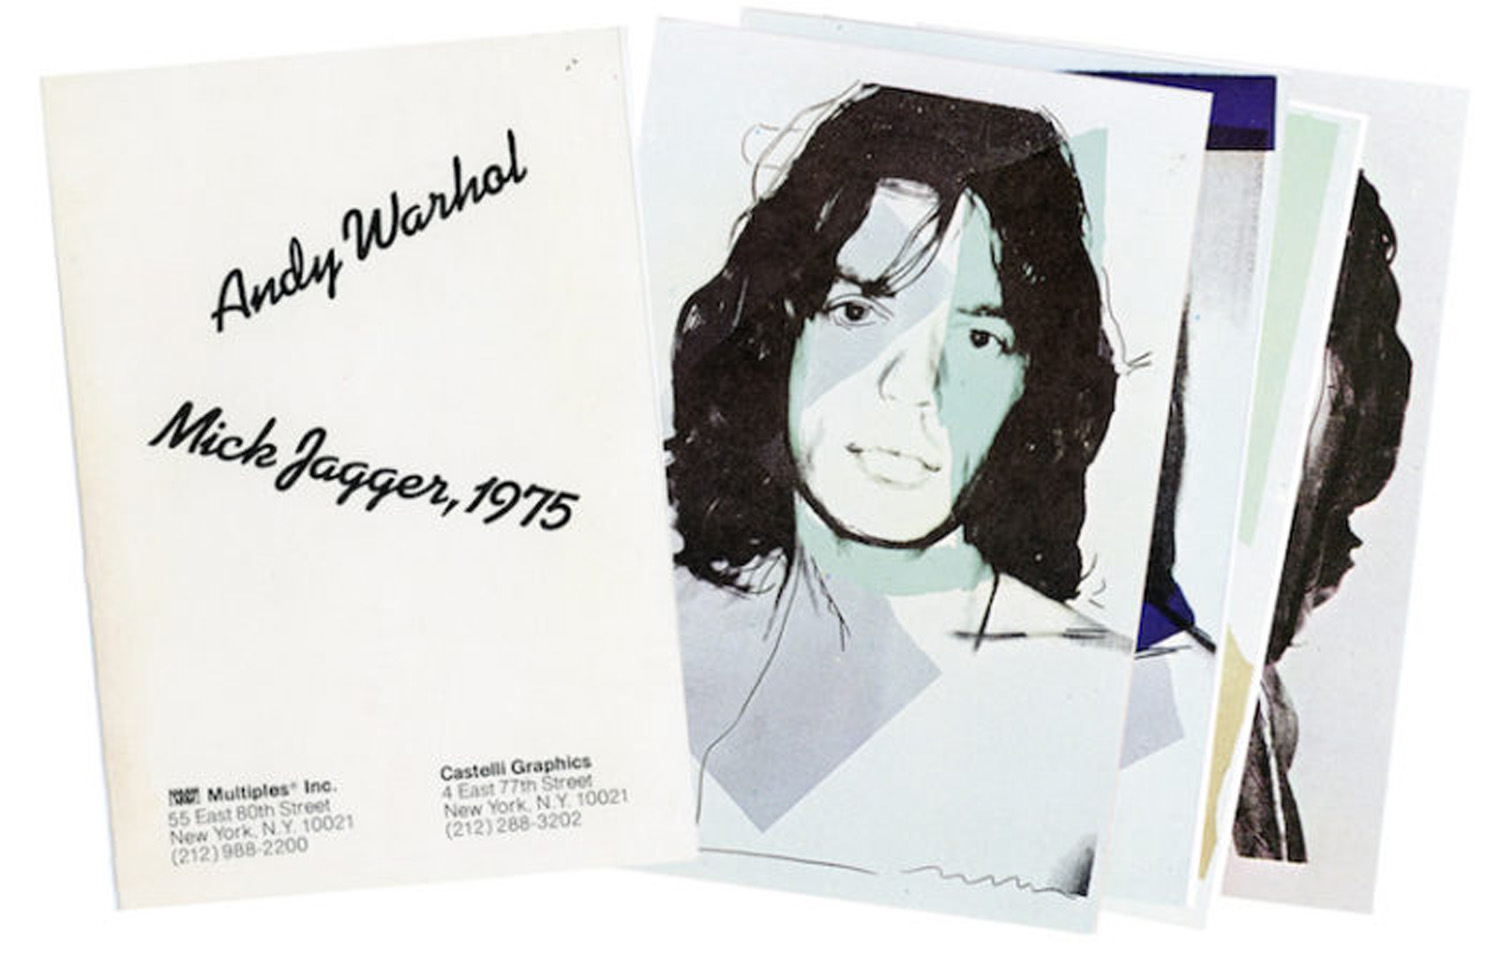 Castelli Graphics, Andy Warhol, Mick Jagger, 1975, Portfolio of 10 Postcards, 1975